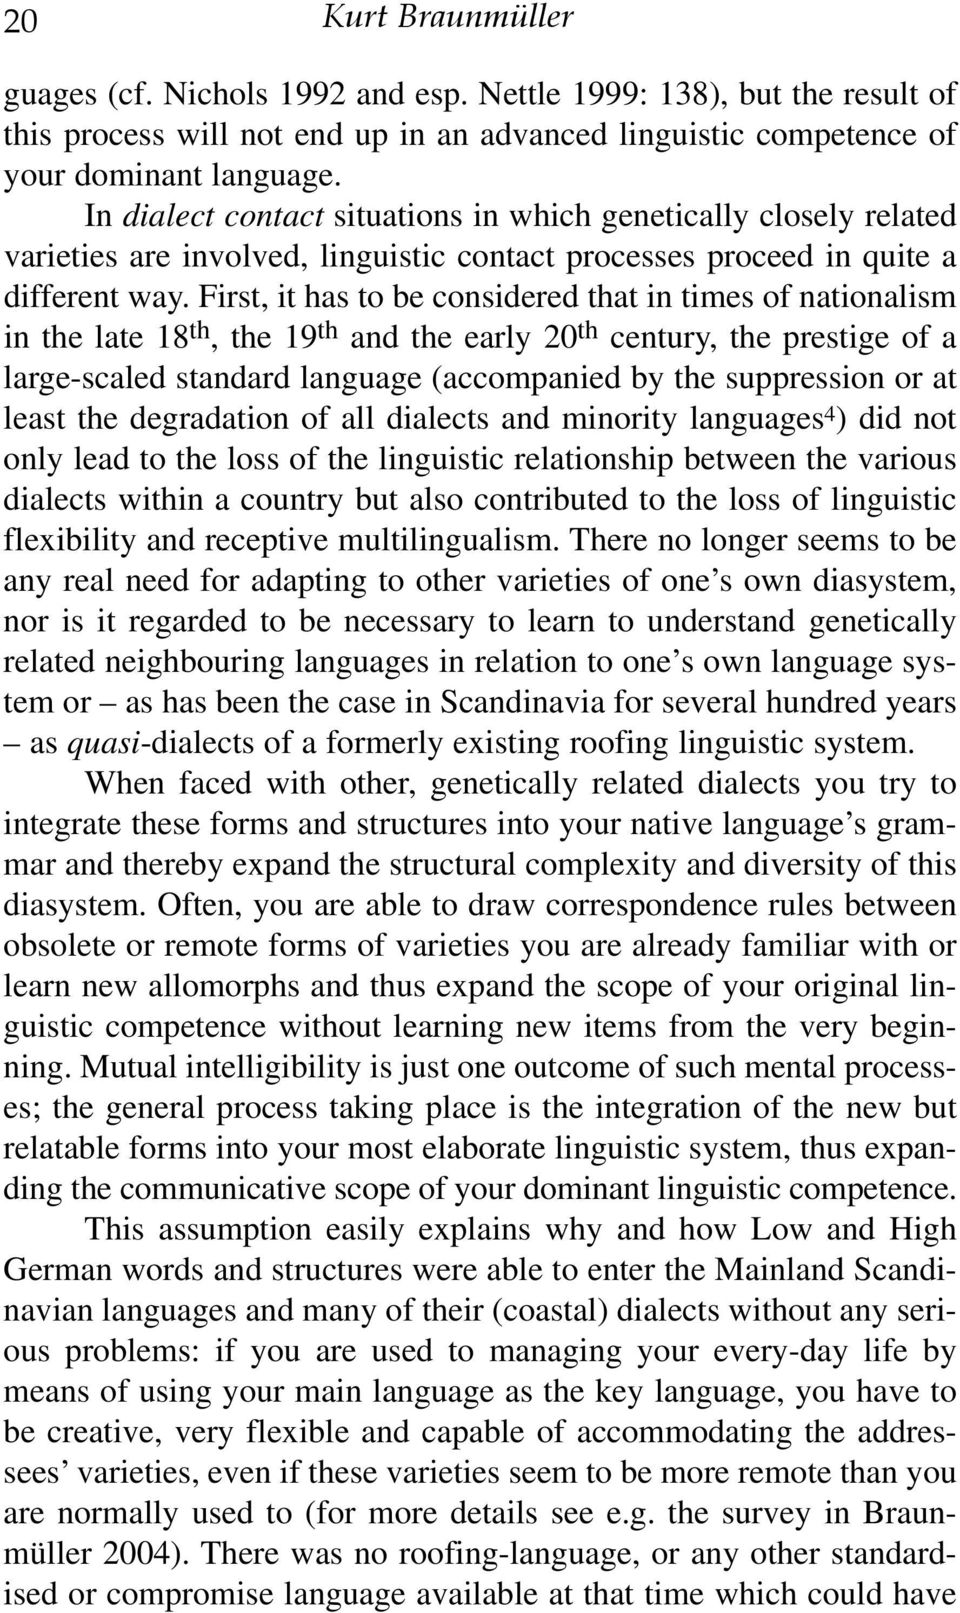 First, it has to be considered that in times of nationalism in the late 18 th, the 19 th and the early 20 th century, the prestige of a large-scaled standard language (accompanied by the suppression